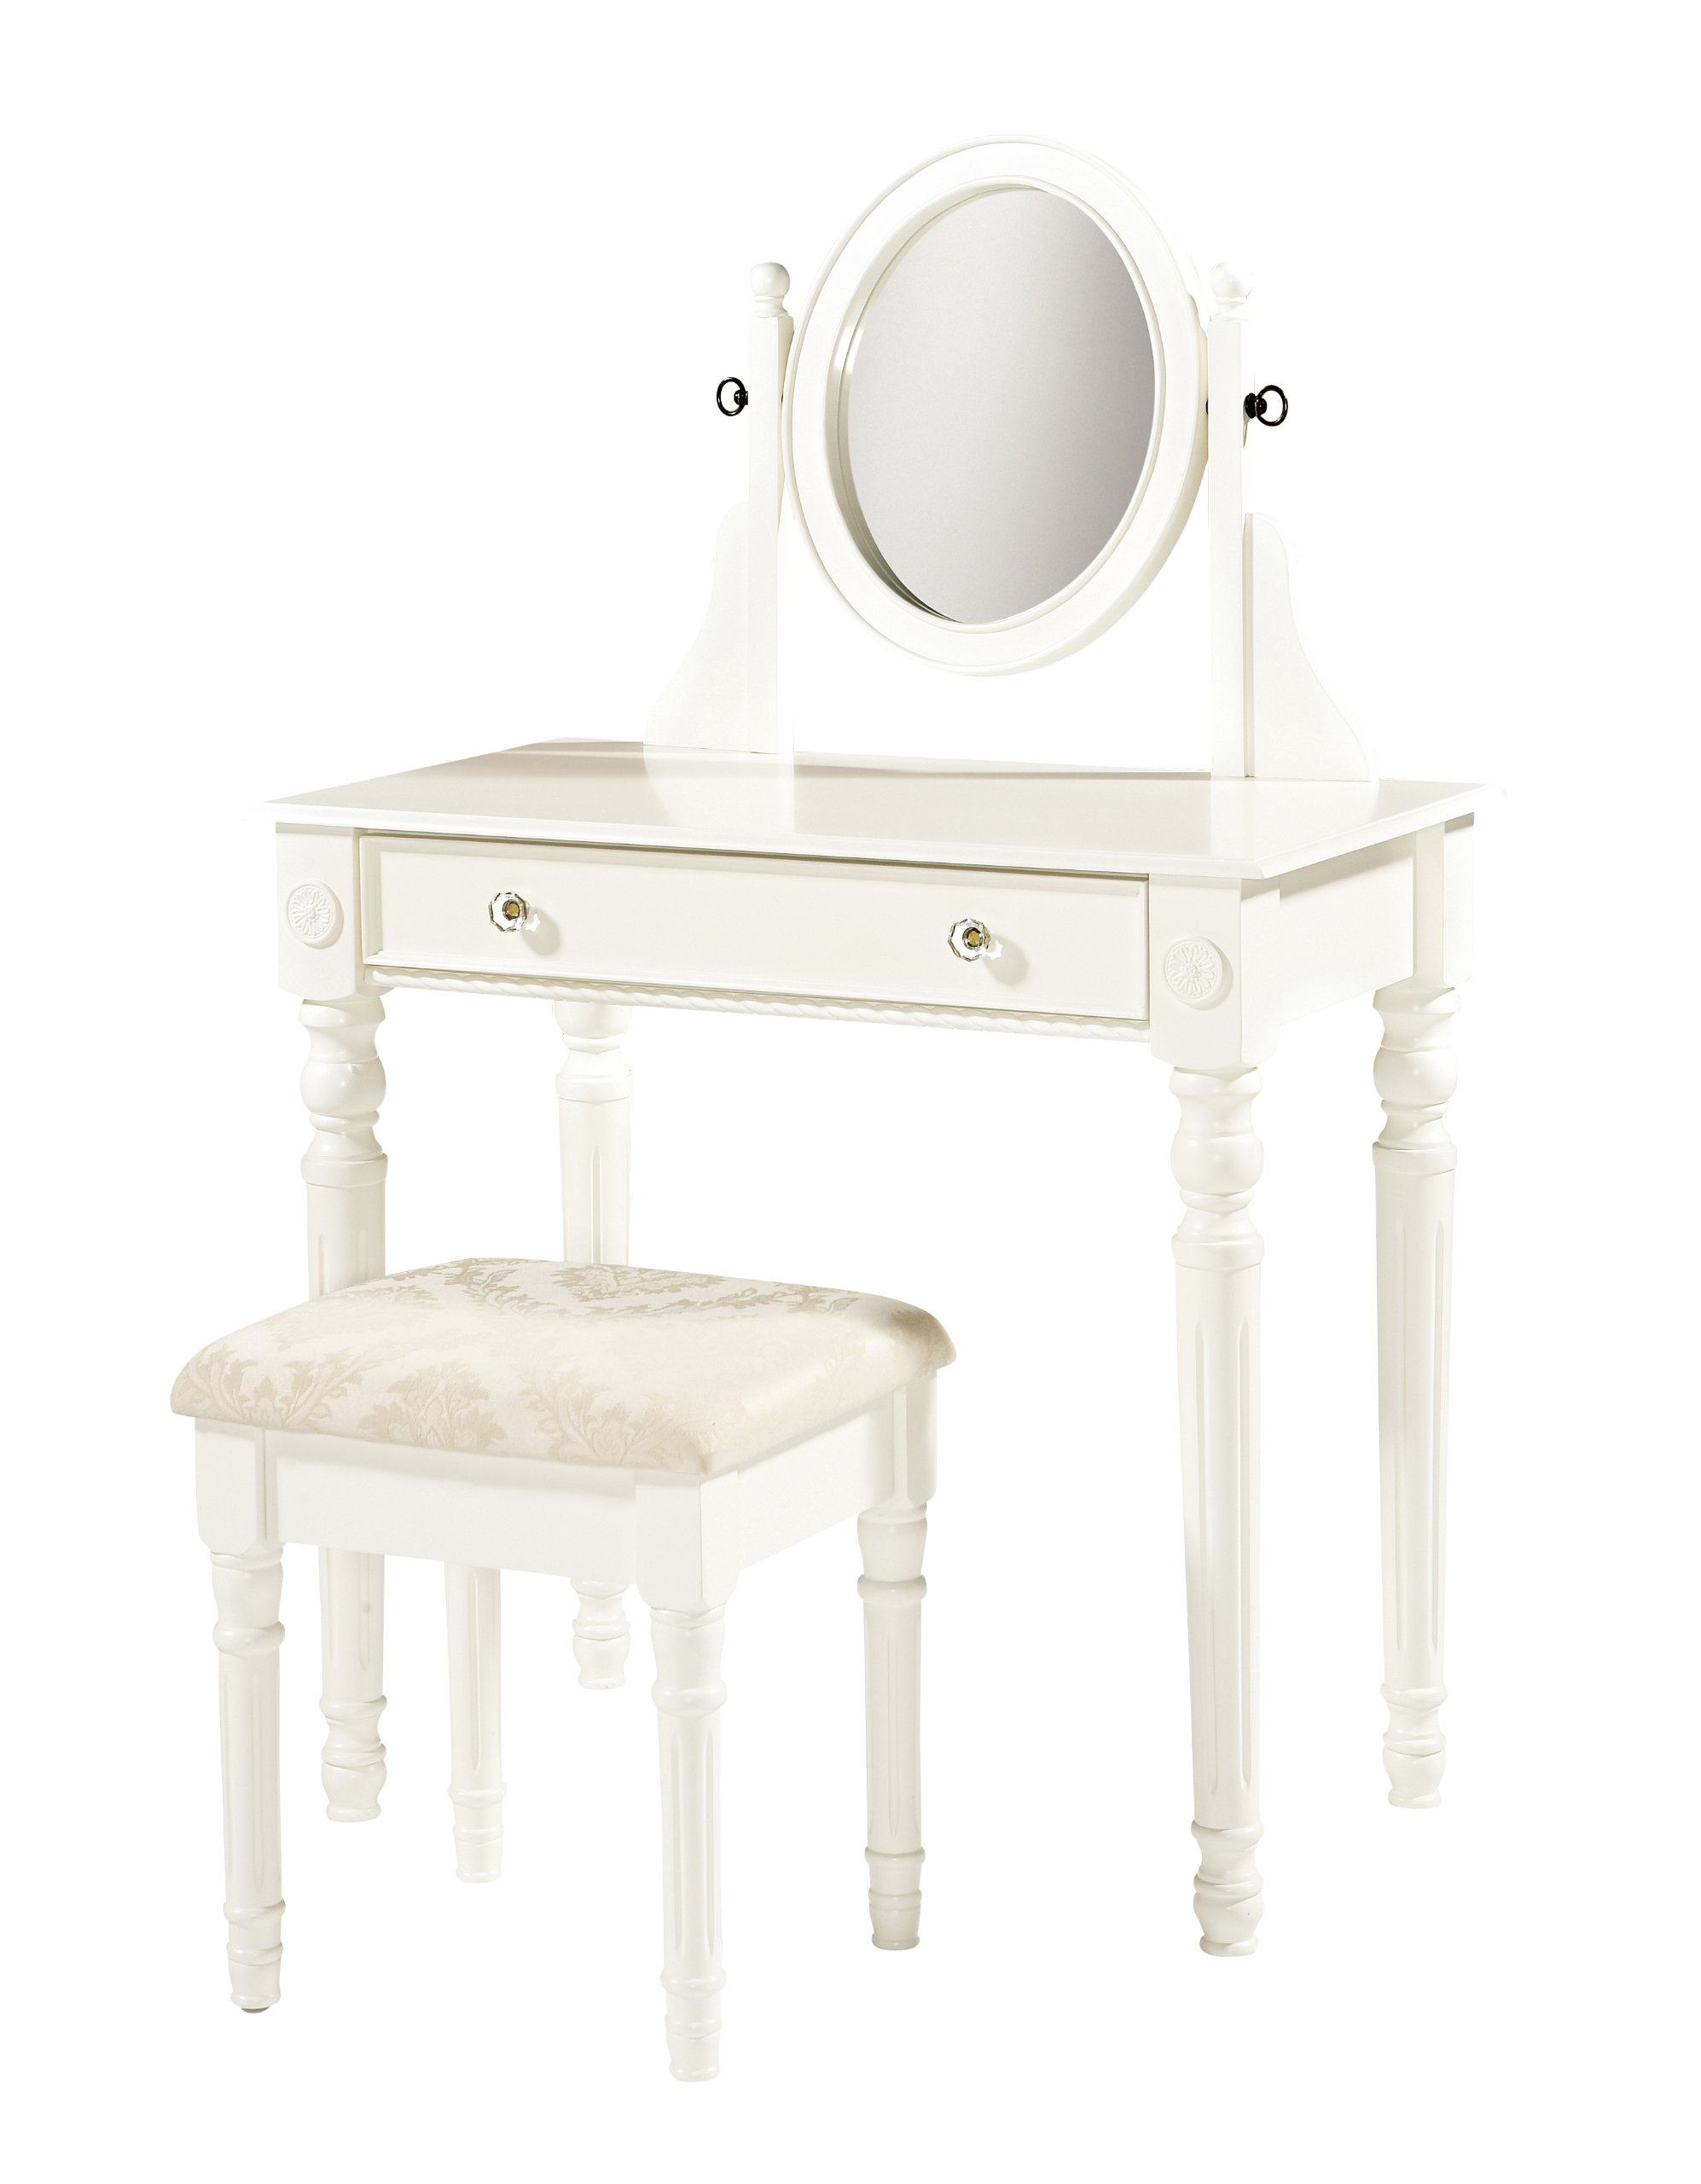 Linon Home Decor Lorraine Vanity Set, White